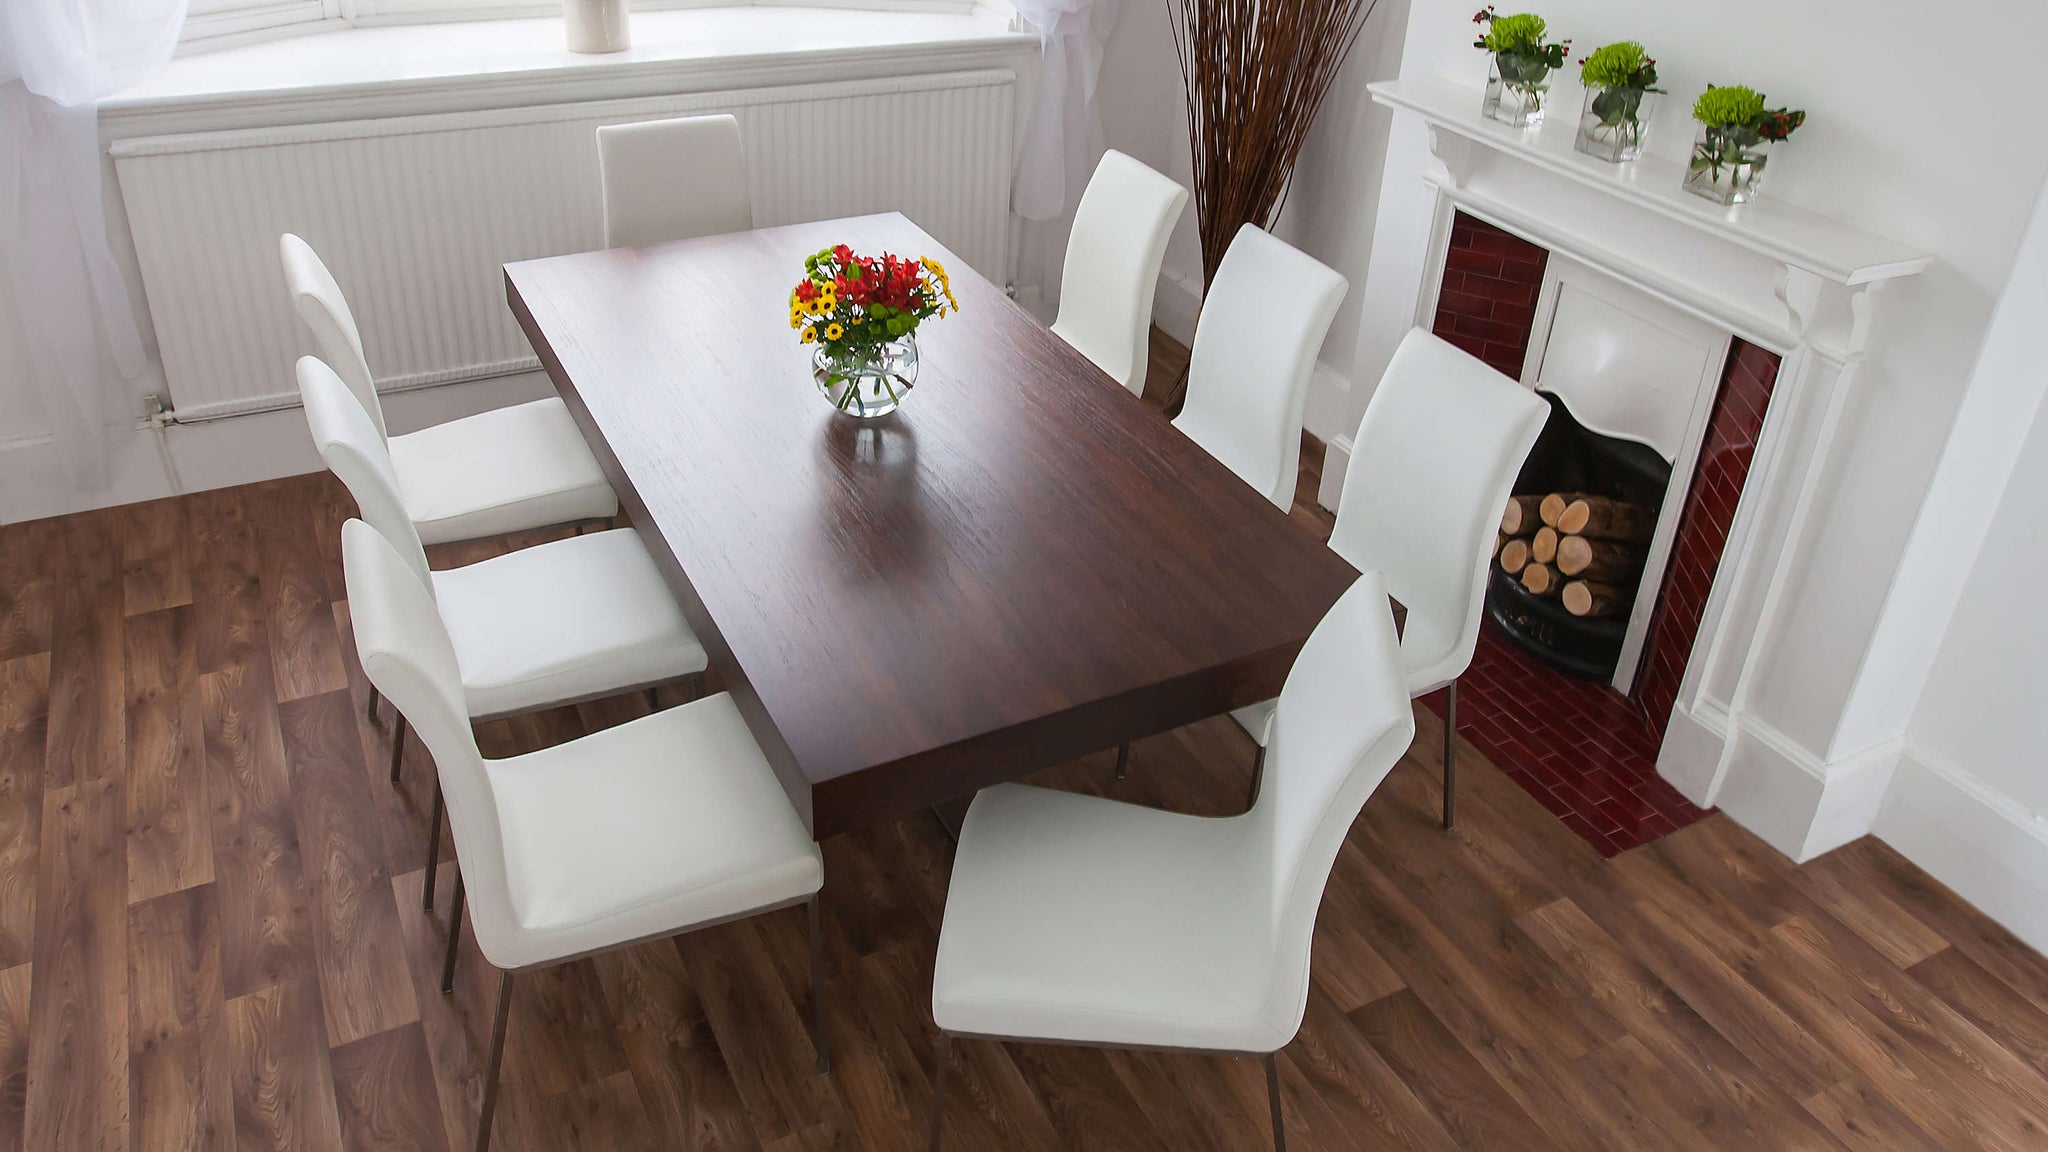 6-8 Seater Floating Dining Table and Faux Leather Dining Chairs